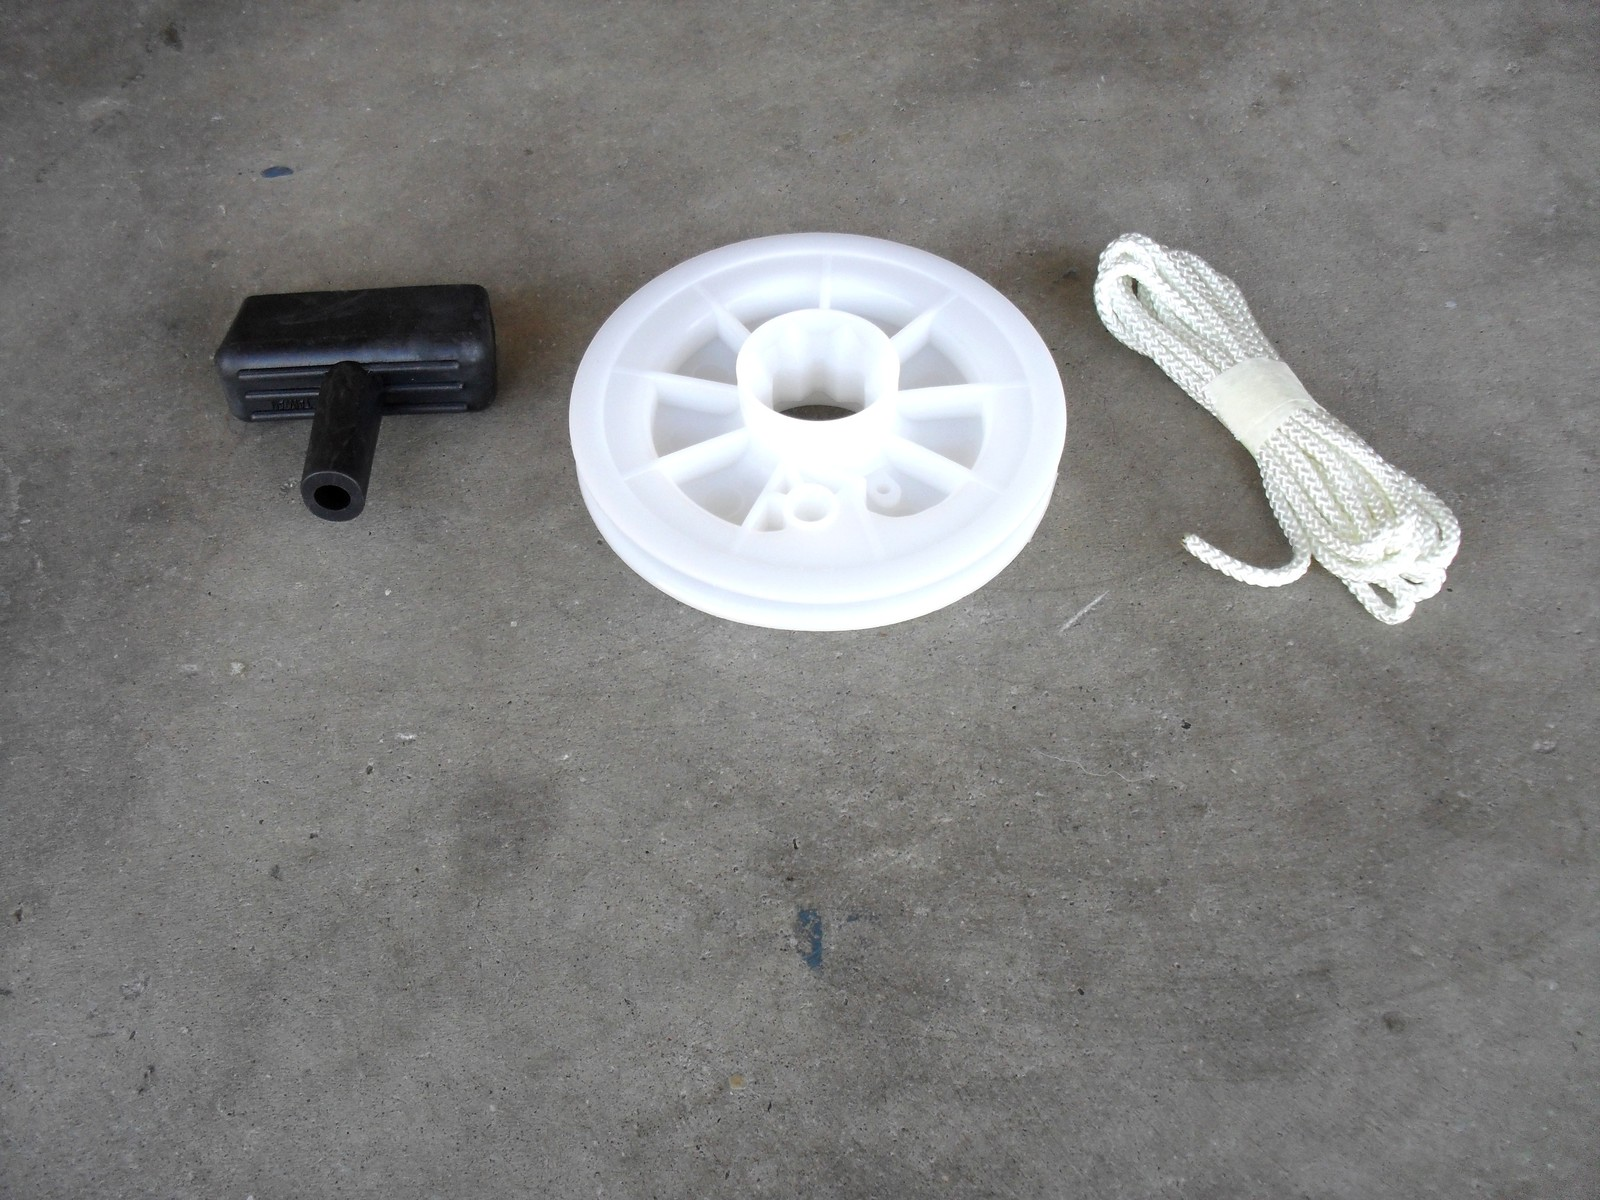 Starter pulley with rope and handle for Briggs and Stratton, Mclane, Craftsman